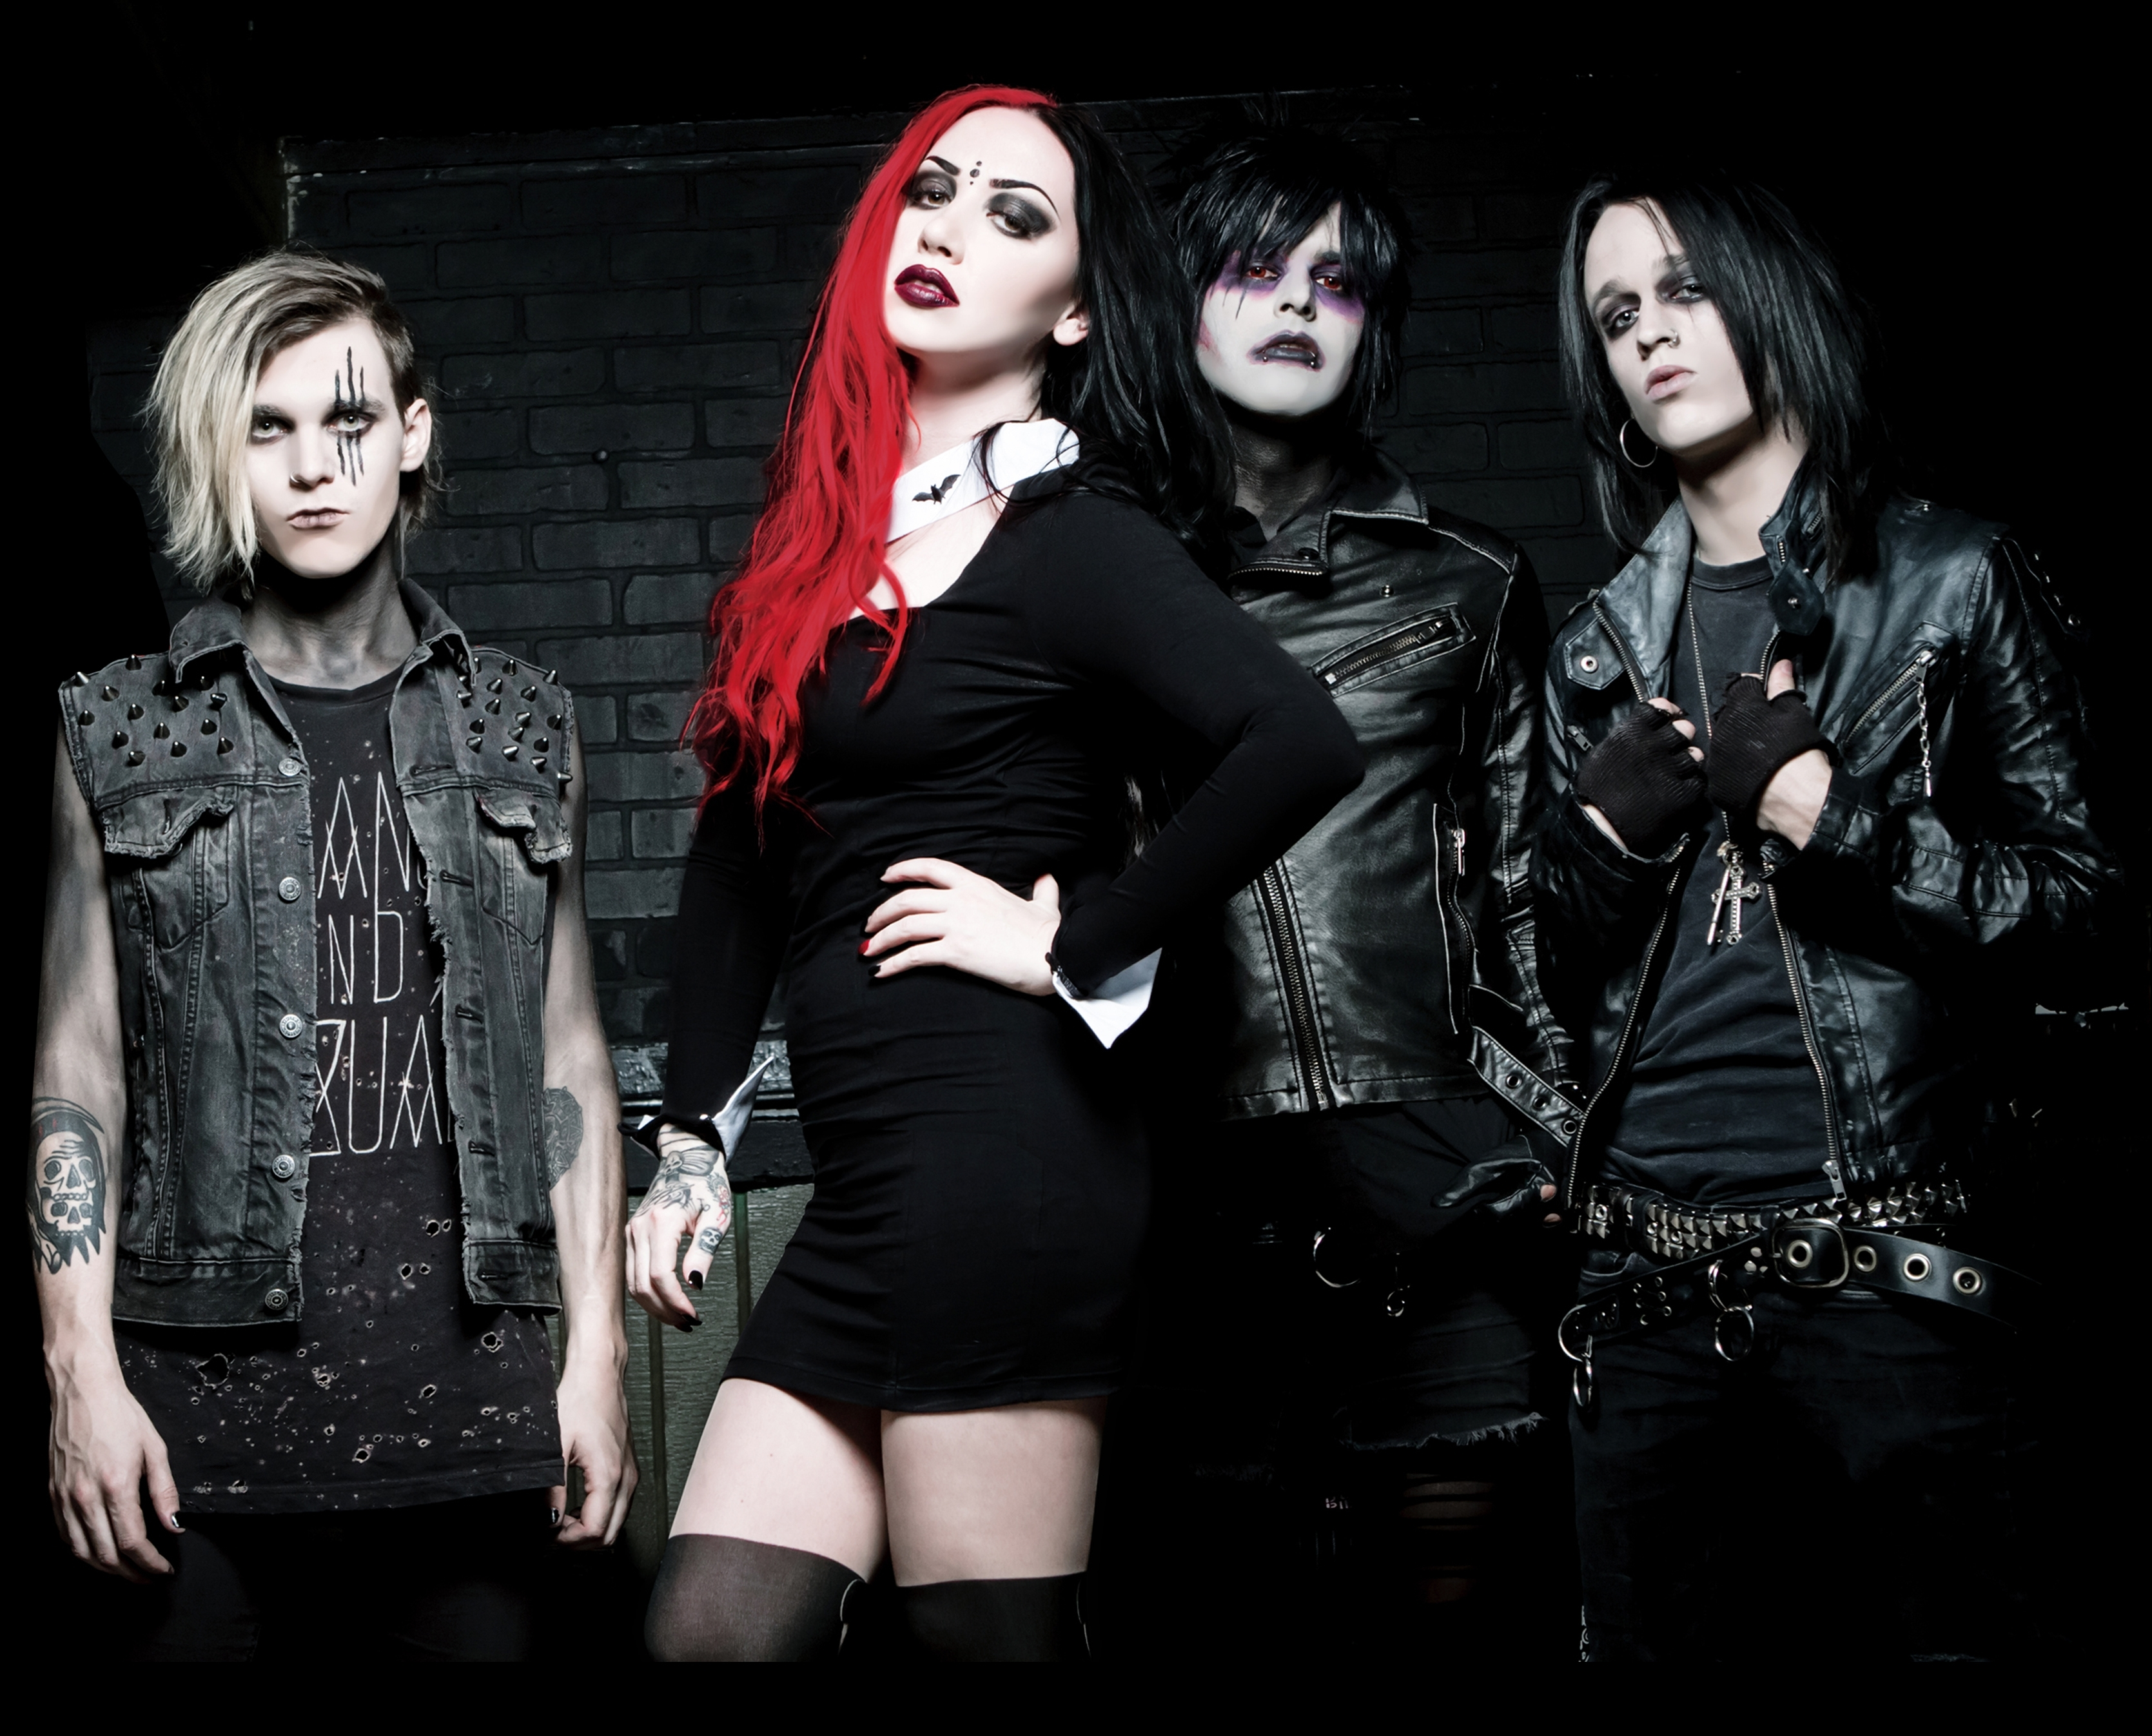 new years day * get scared * eyes set to kill * the relapse symphony